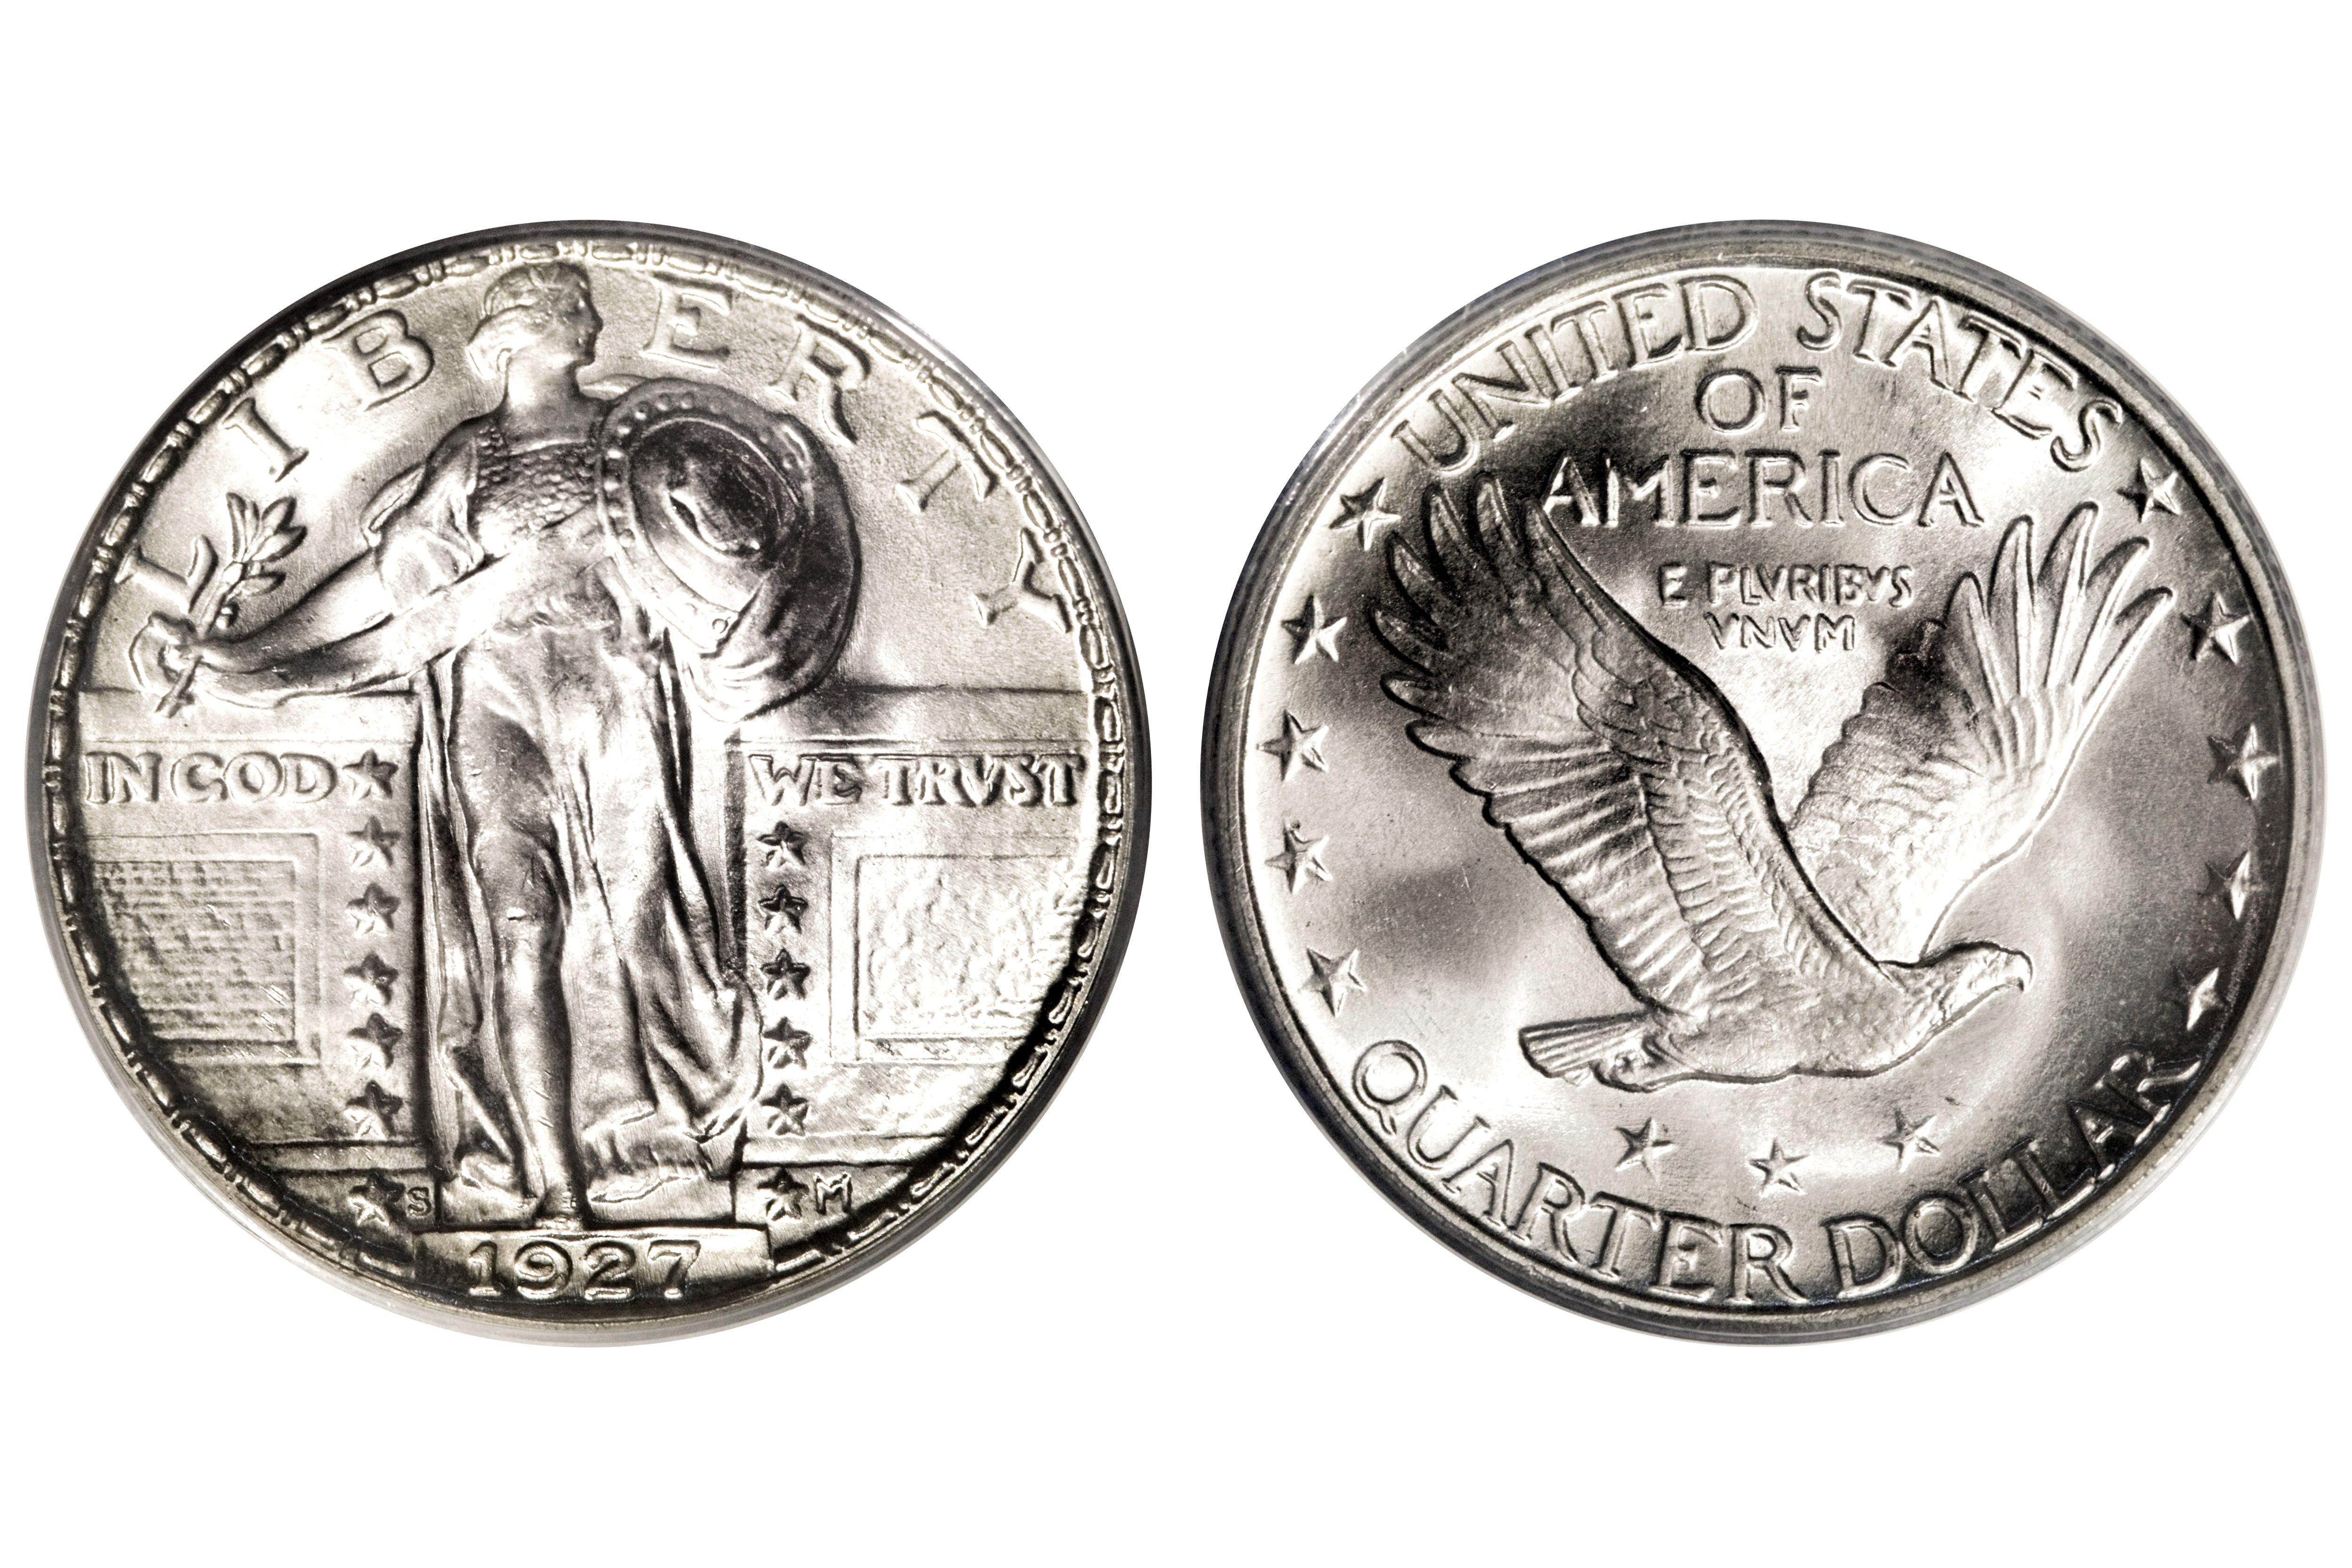 Standing Liberty Quarter Values And Prices